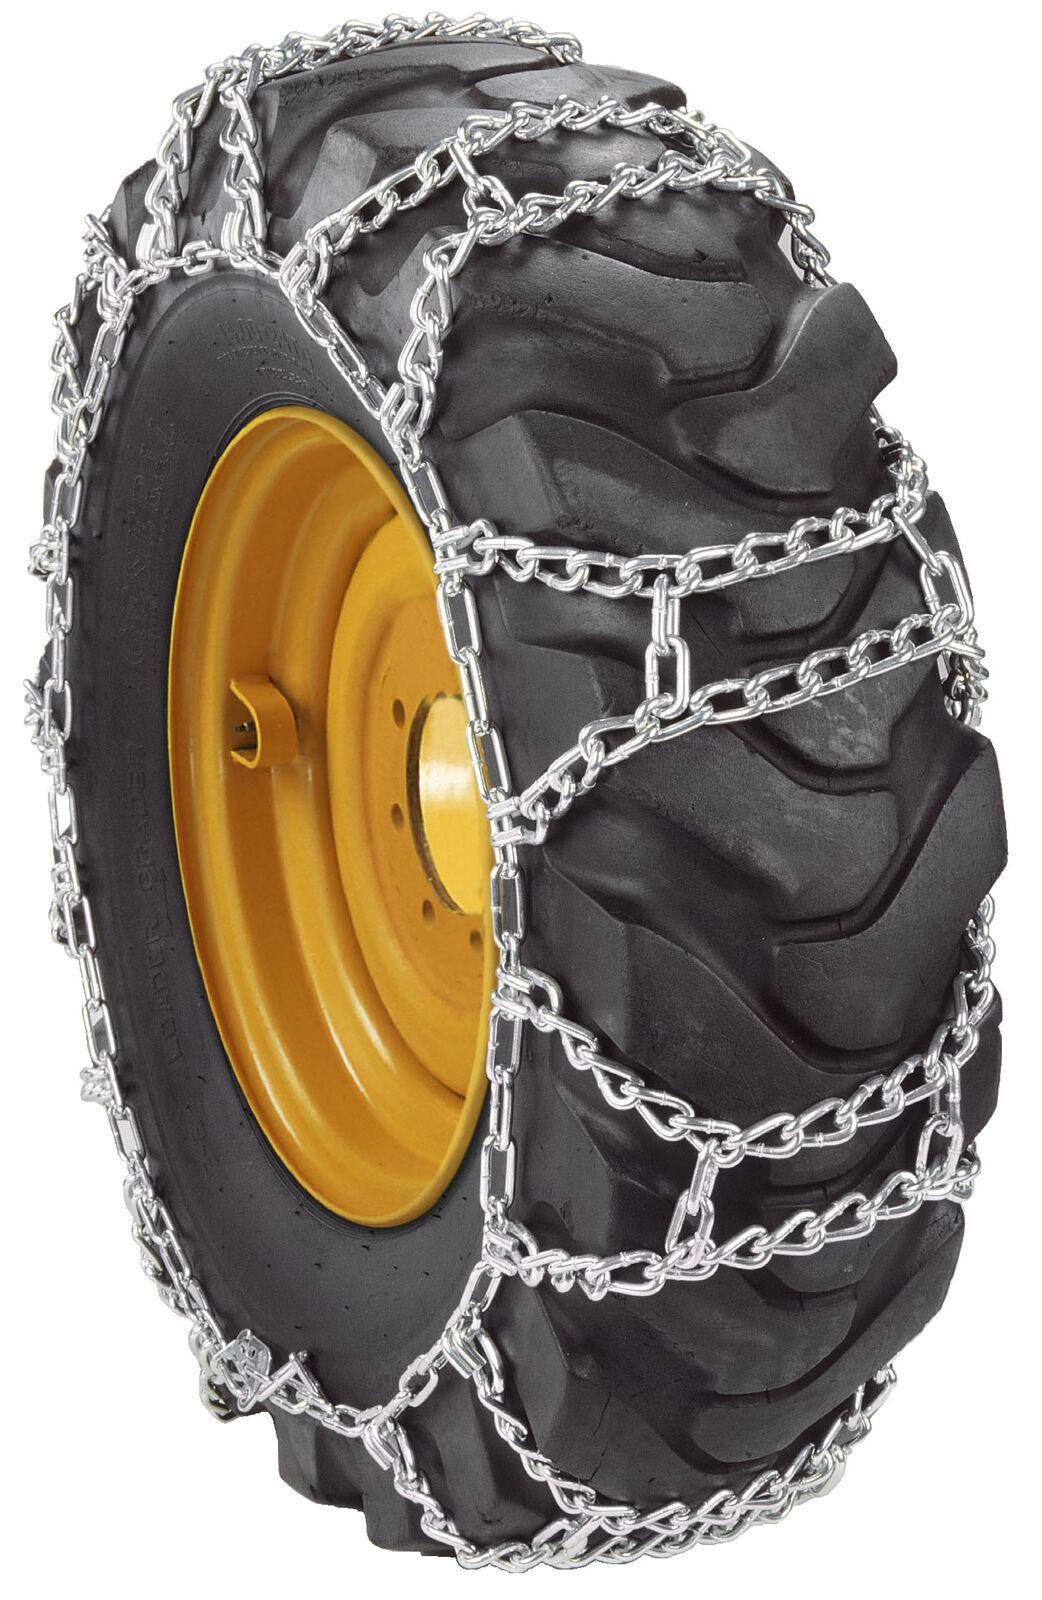 7mm Alloy Duo 11 2 28 Tractor Tire Chains Midwest Traction